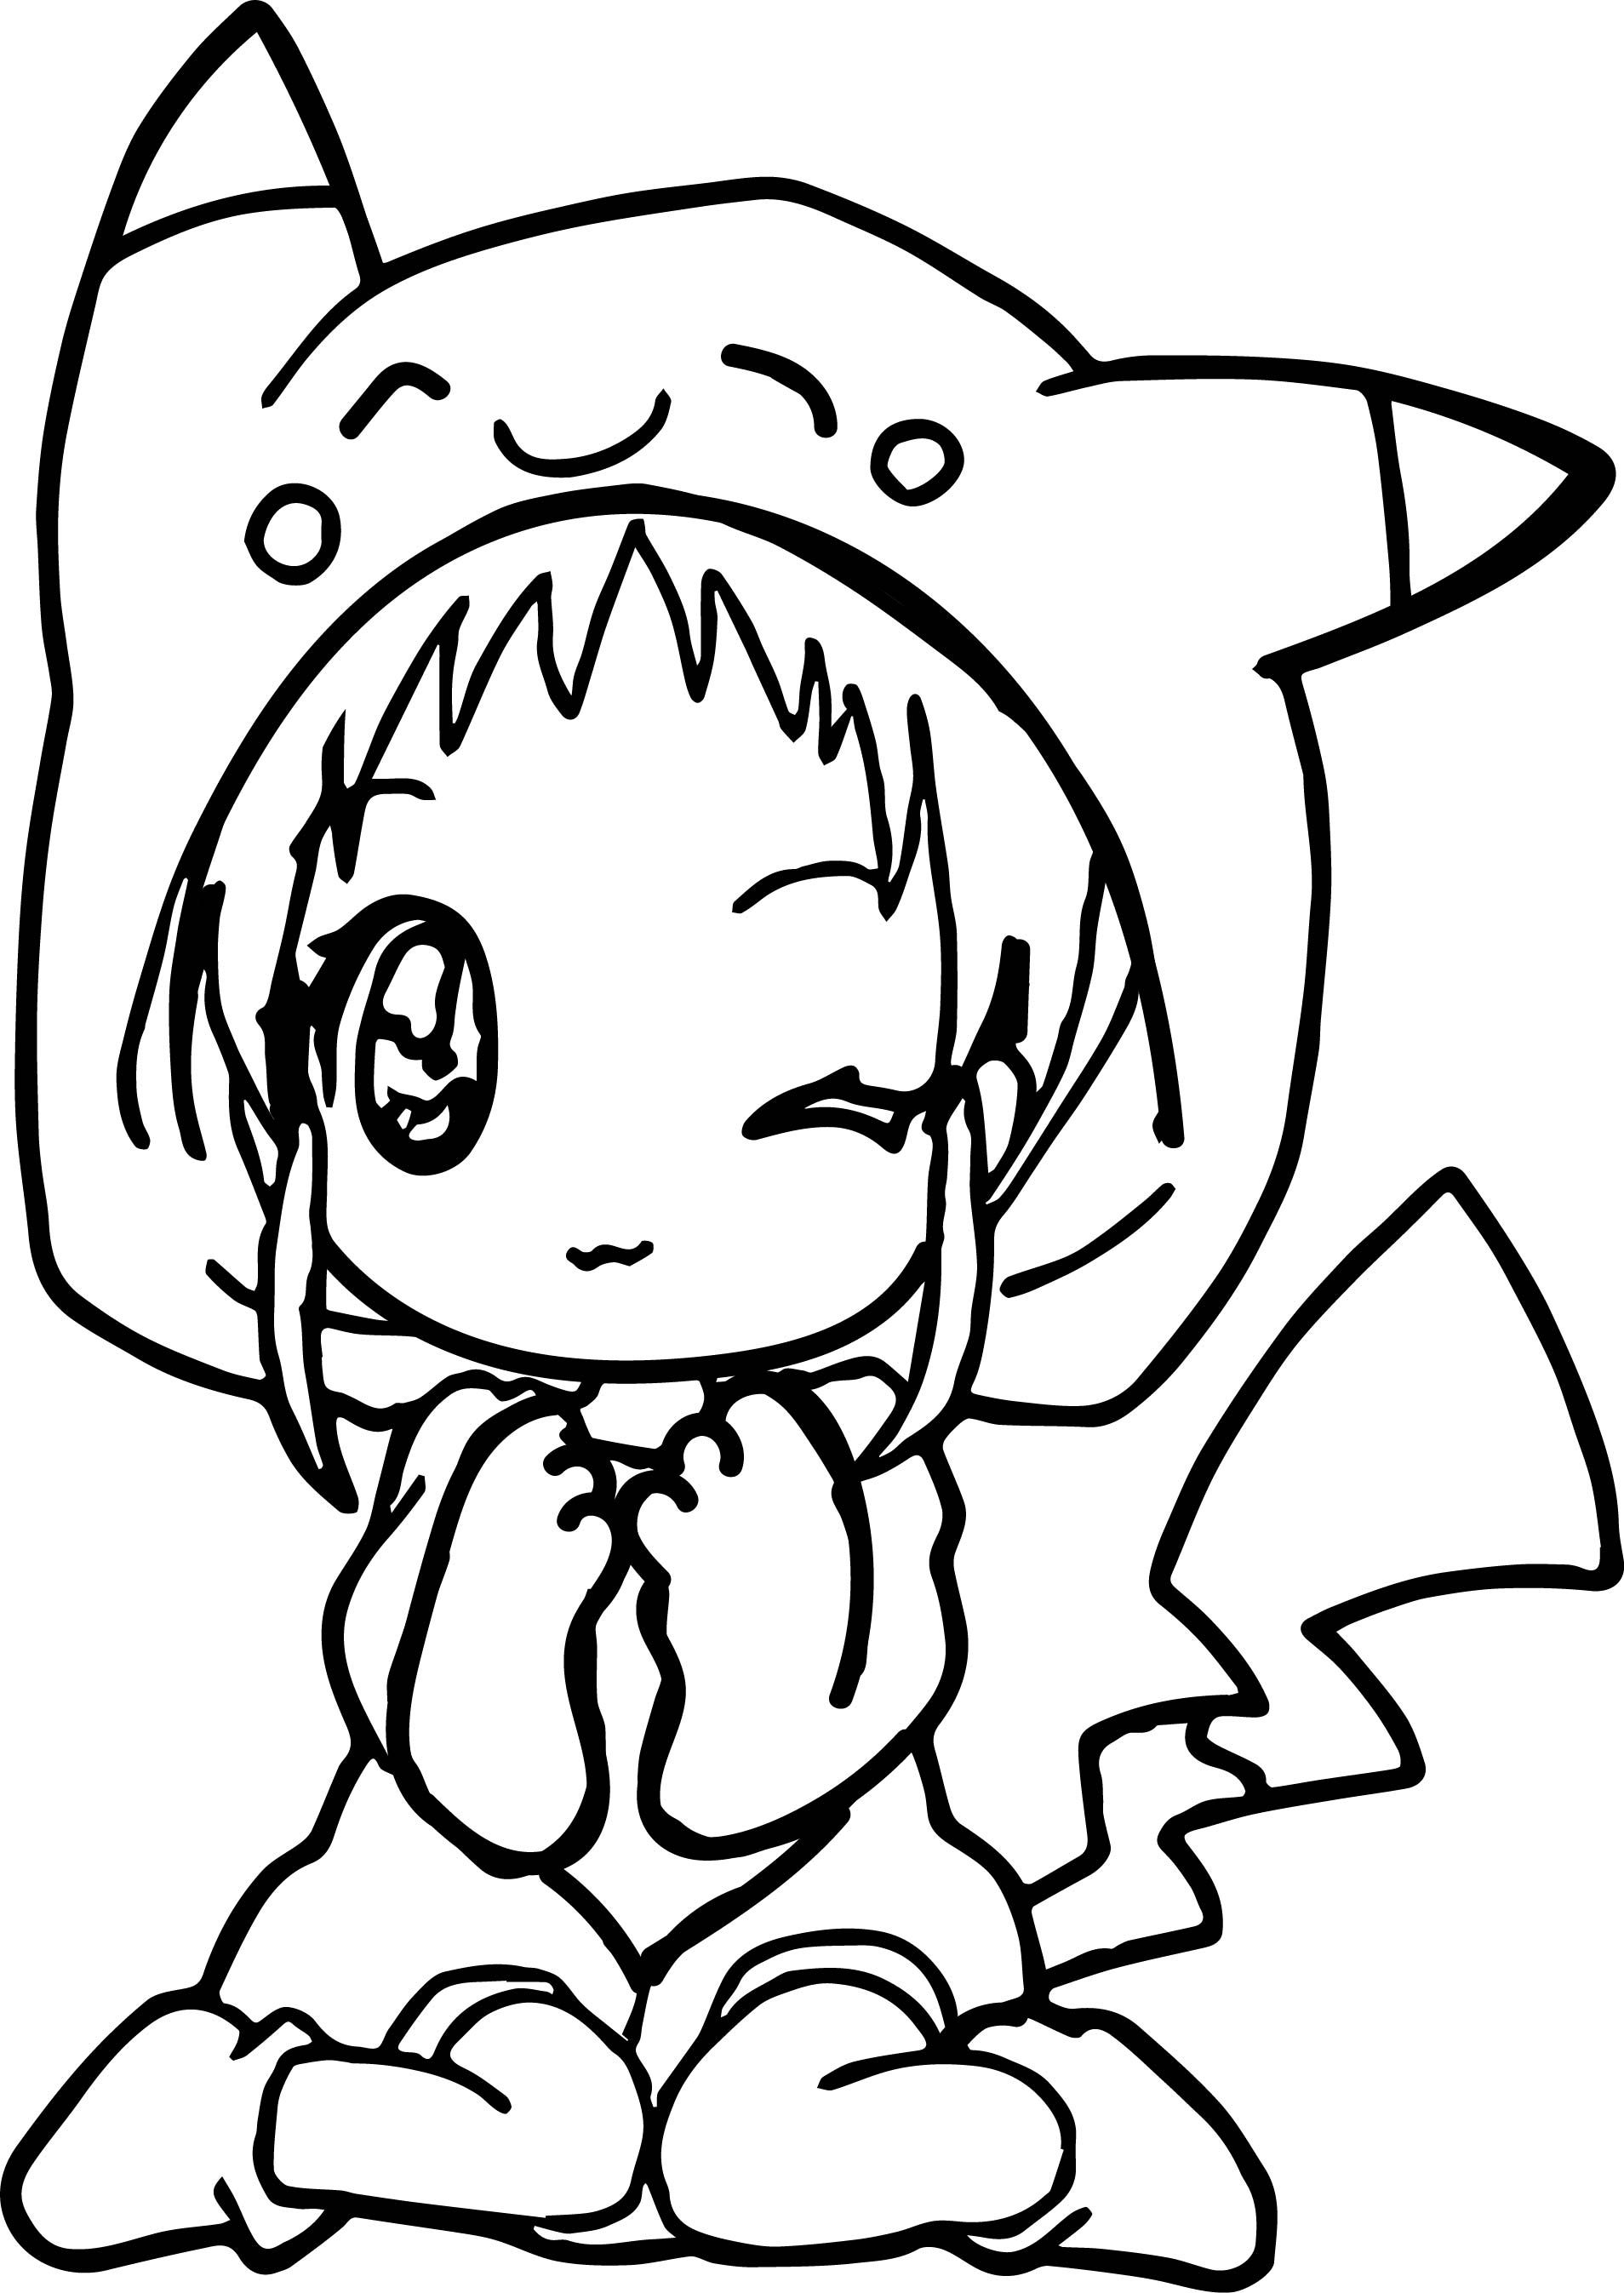 Anime Girl Pikachu Dress Coloring Page Wecoloringpage At Color Pages ...